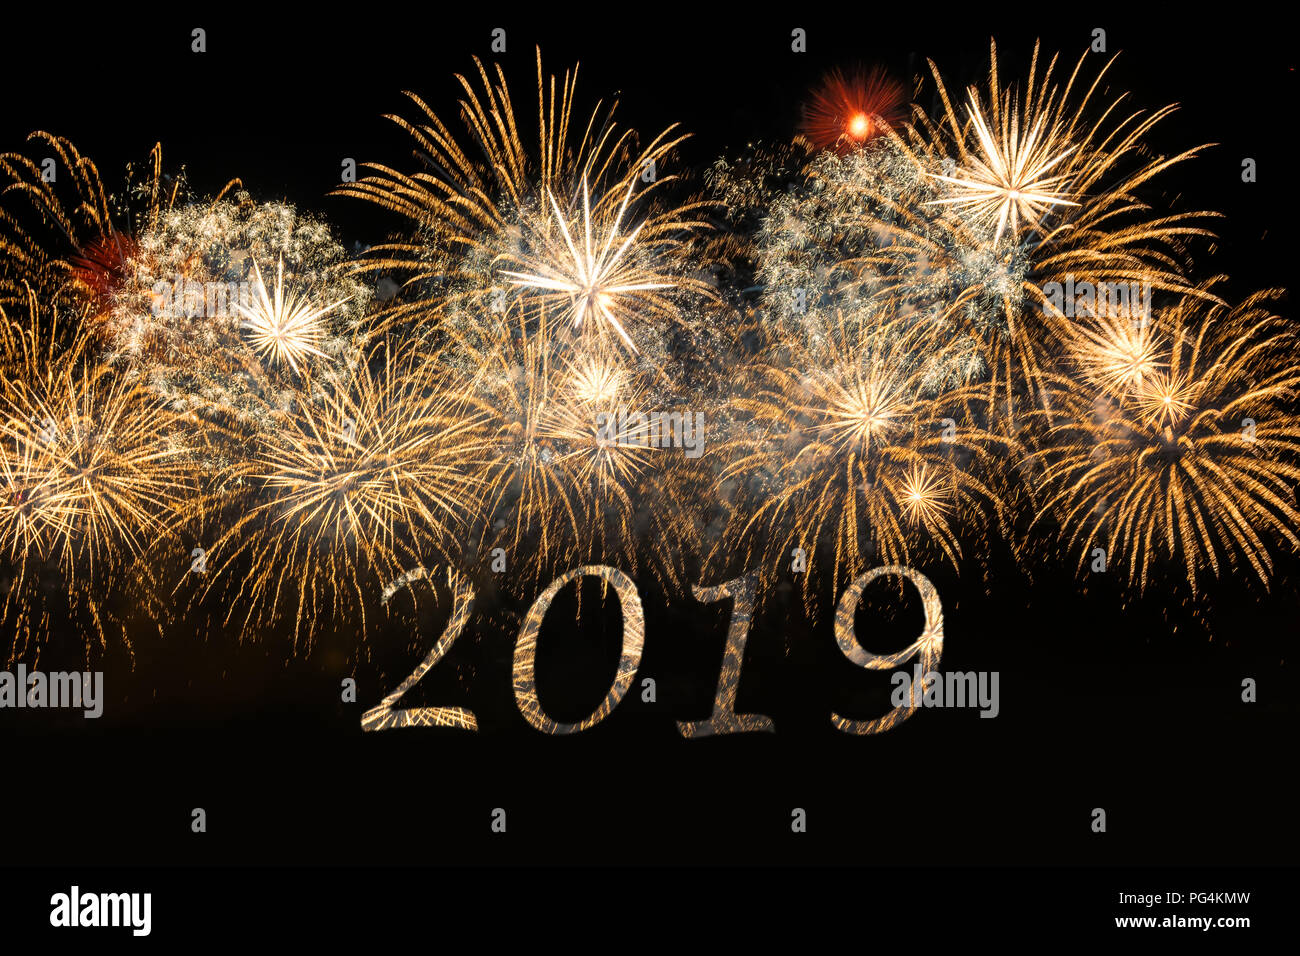 happy new year 2019 celebration colorful fireworks new year and holidays concept